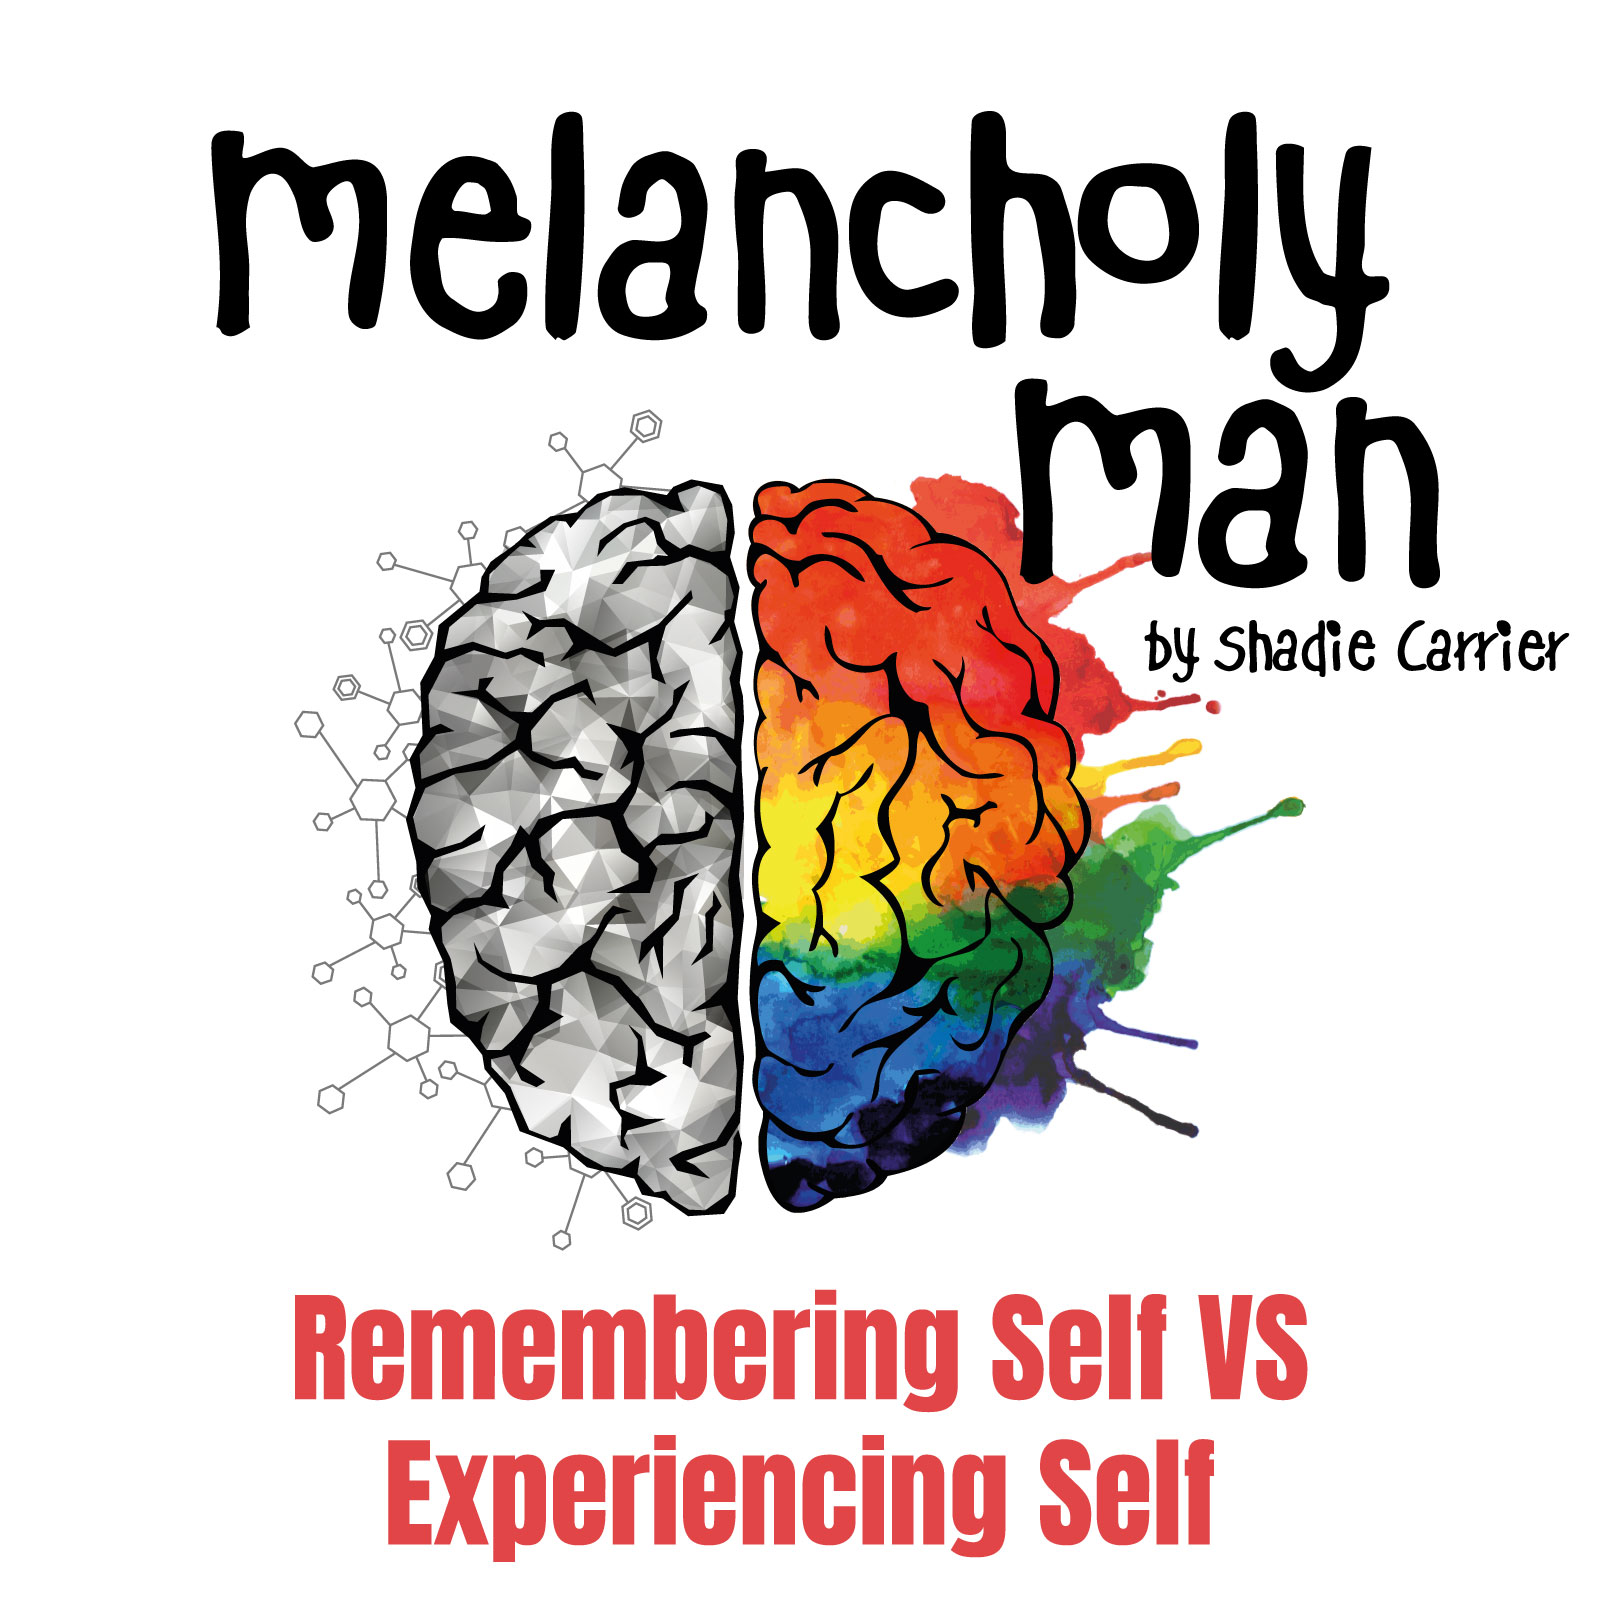 Melancholy Man #2 Remembering Self VS Experiencing Self